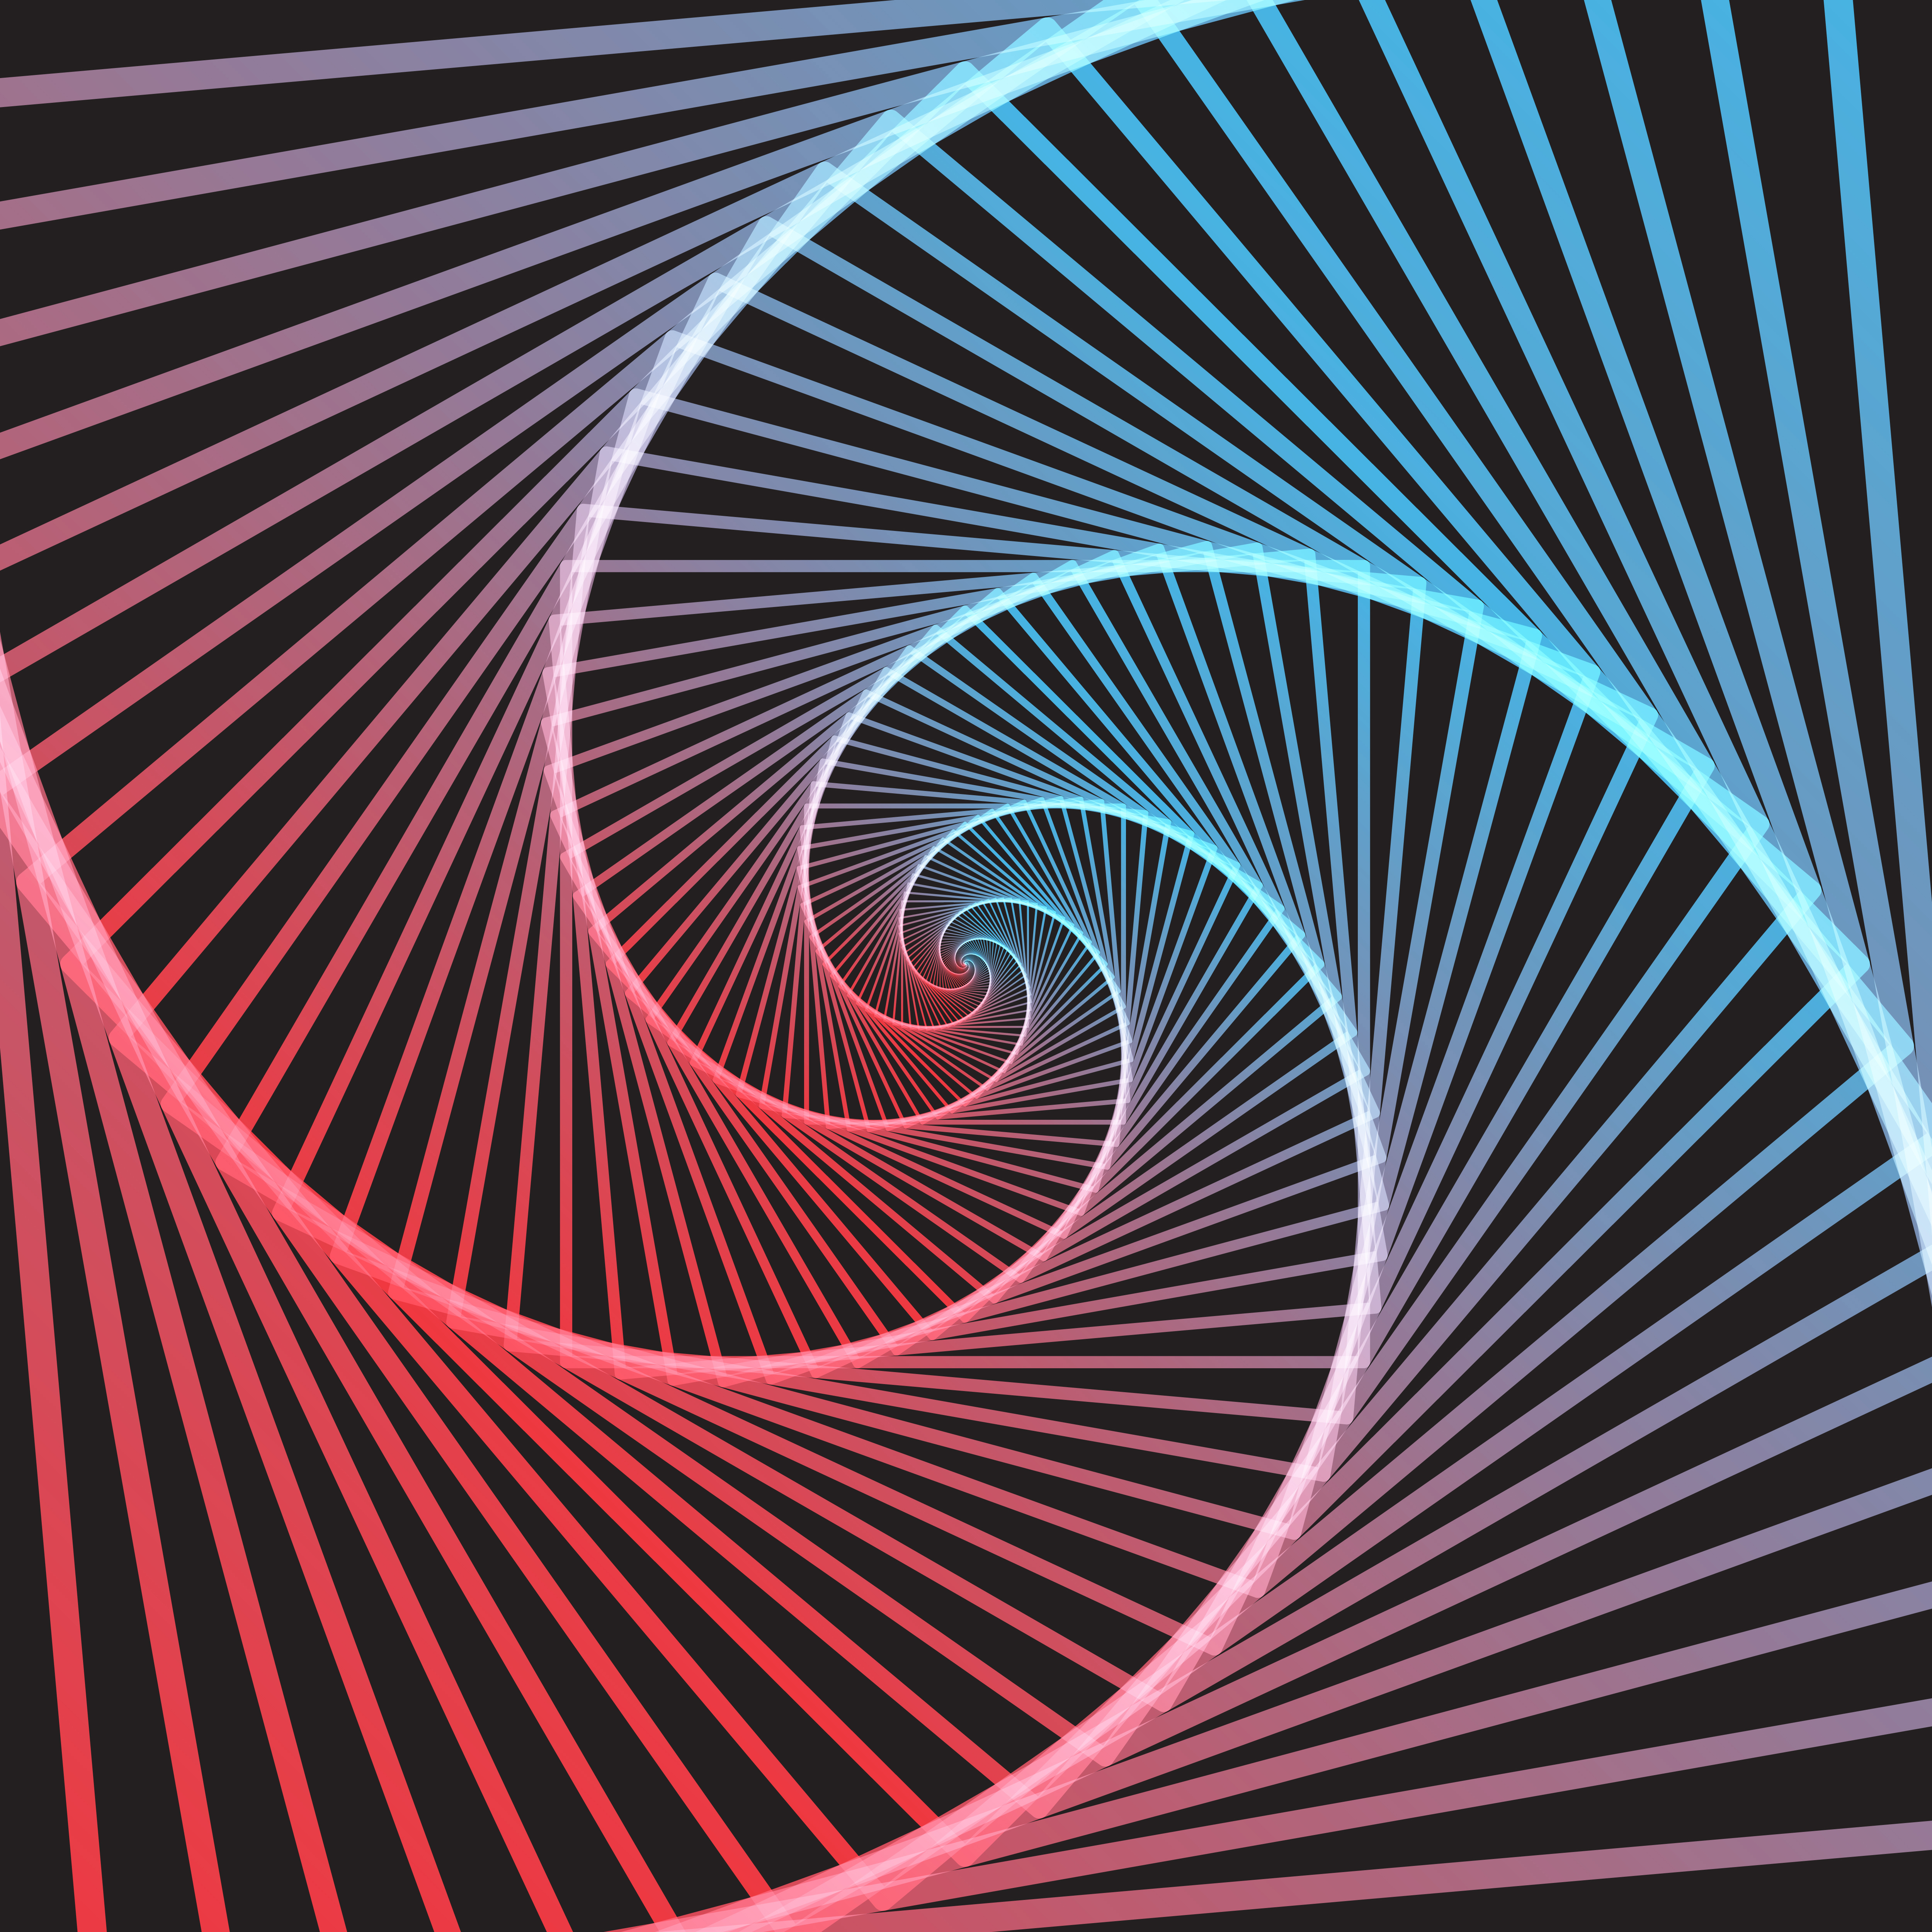 Abstract Color Optical Illusion Background Download Free Vectors Clipart Graphics Vector Art